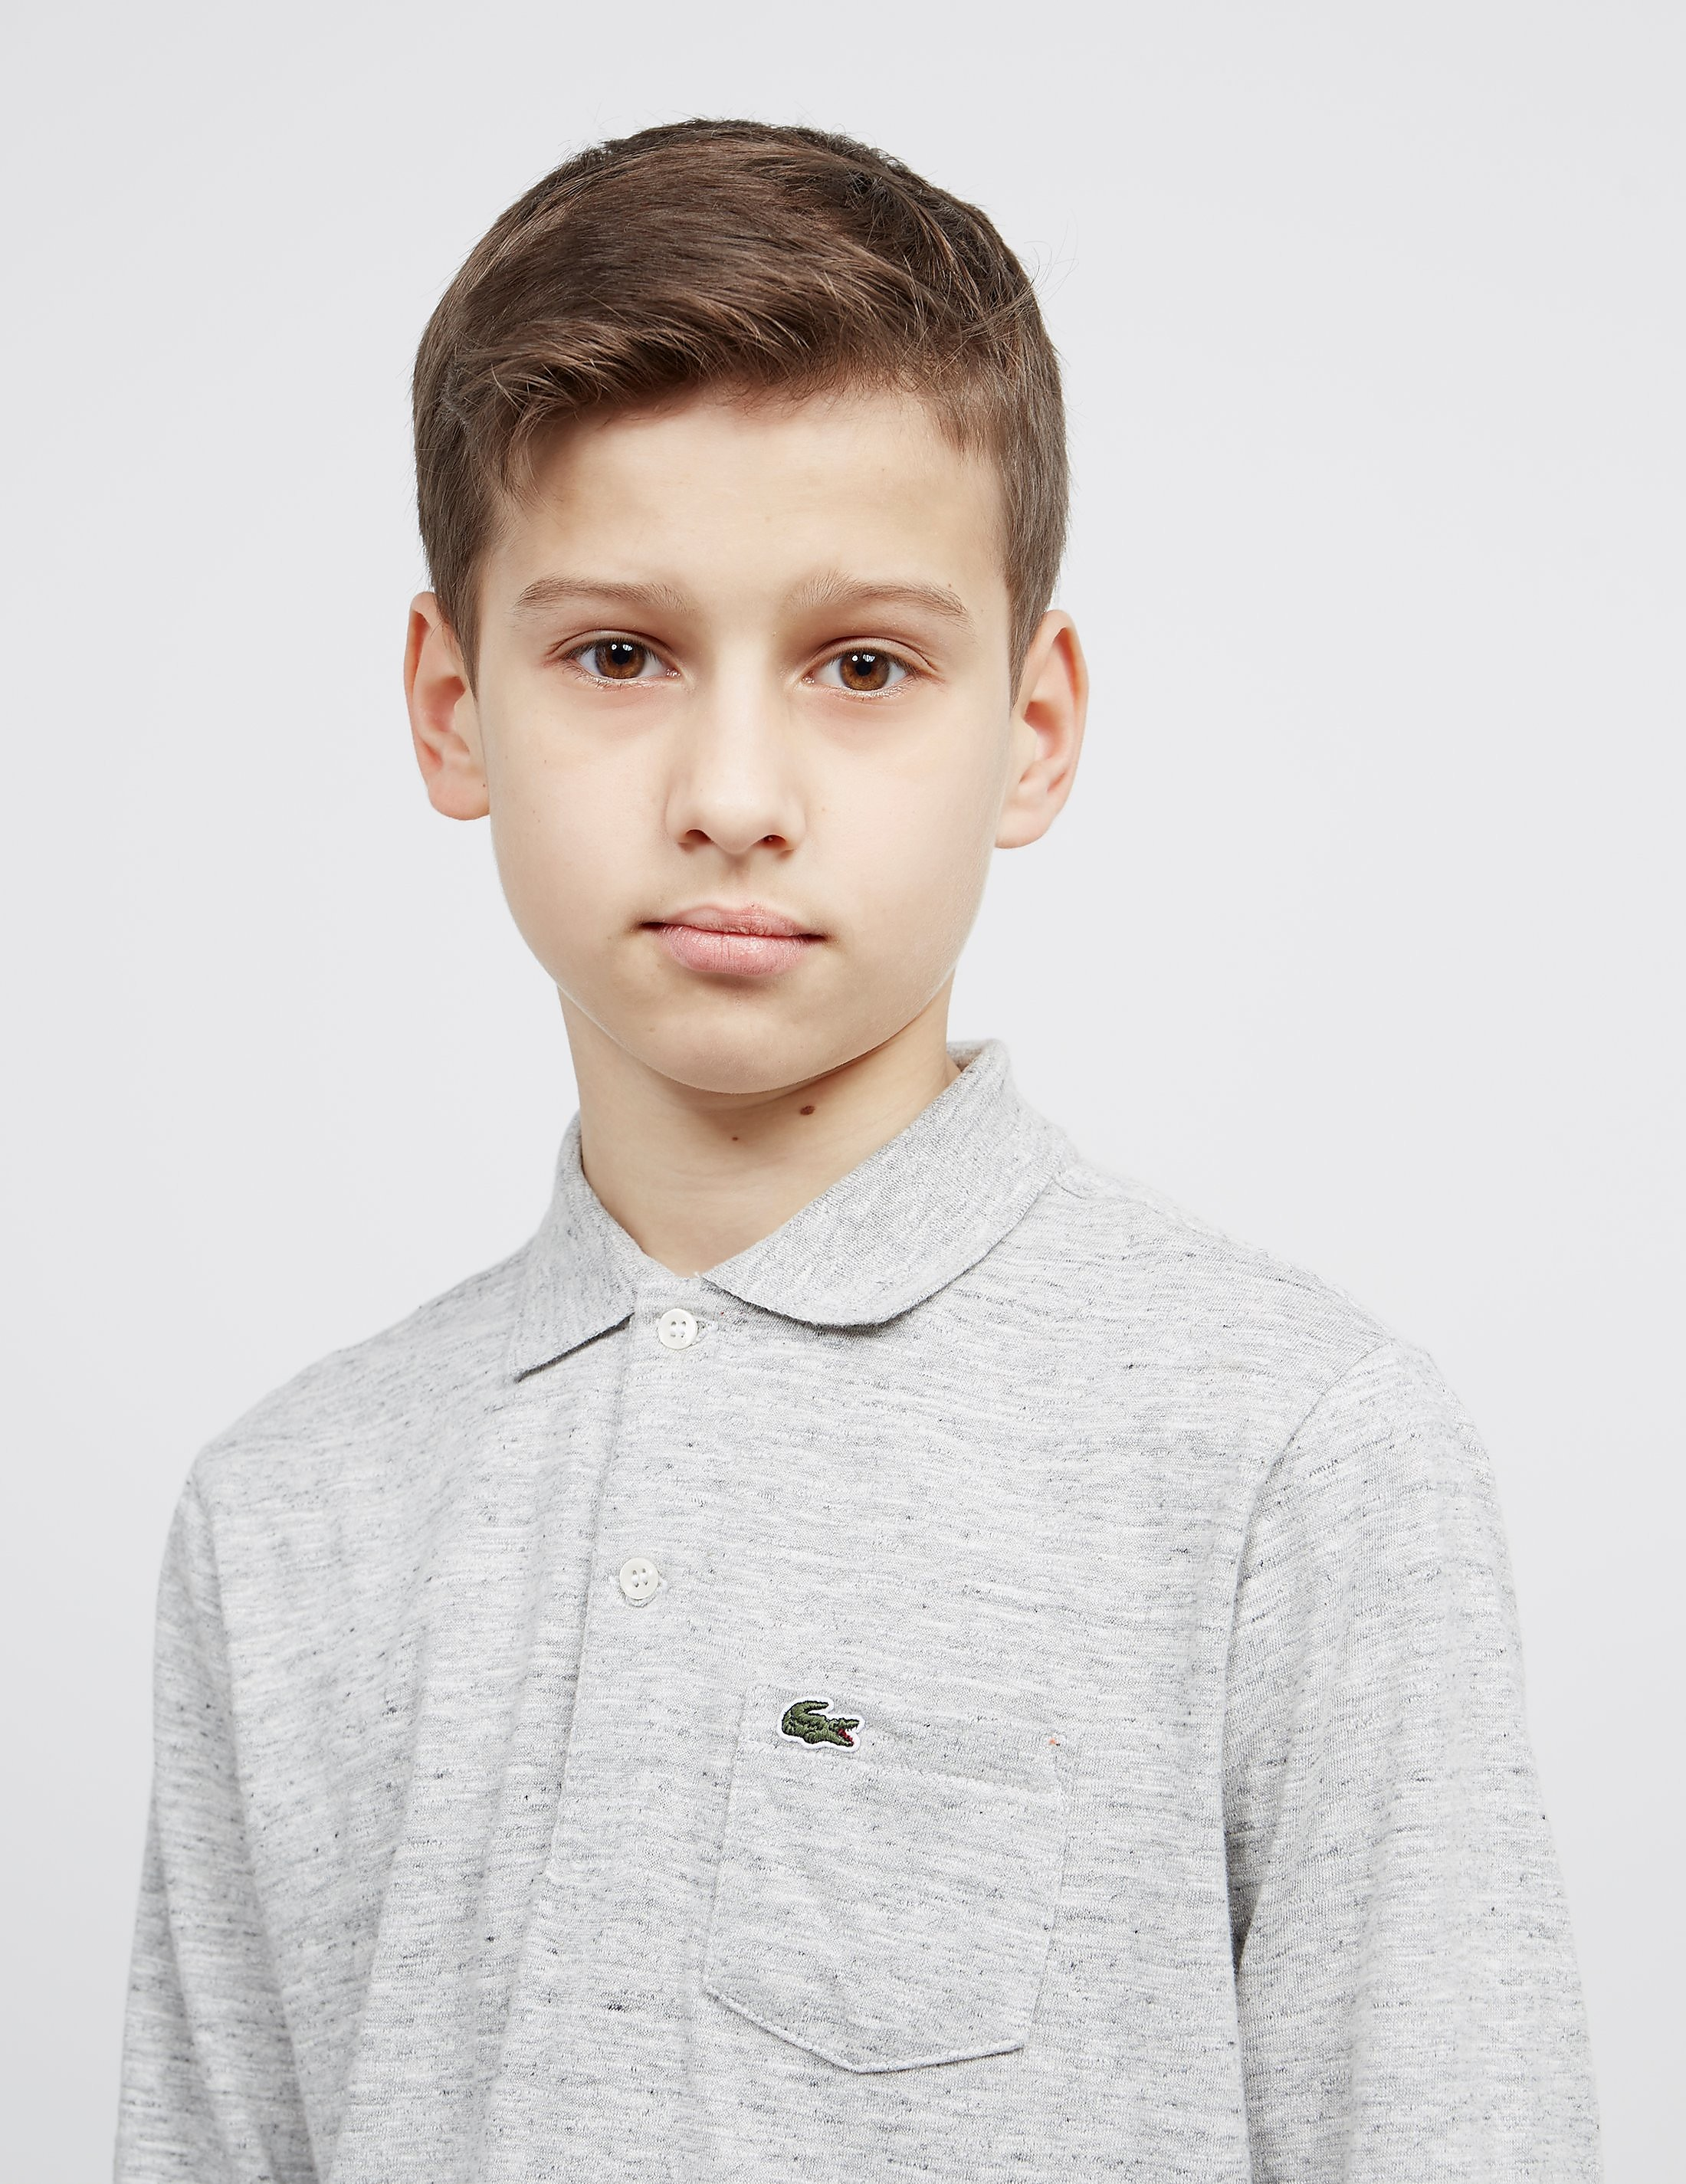 Lacoste Jasper Long Sleeve Polo Shirt